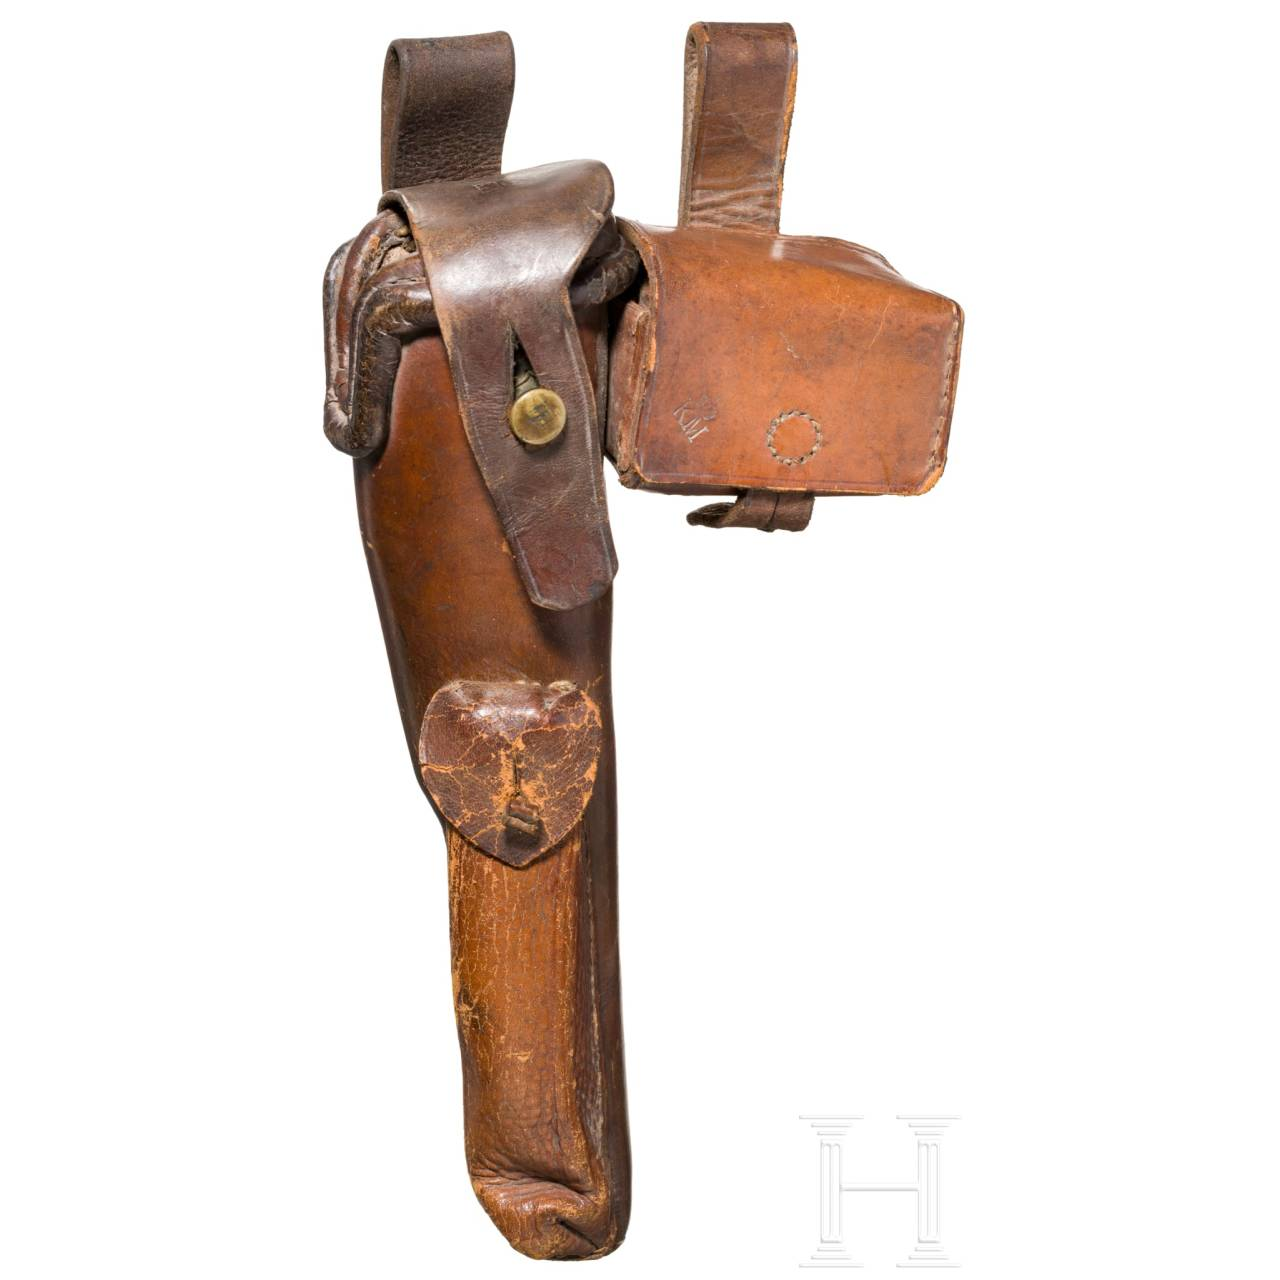 A German navy holster for a Colt model 1851 Navy